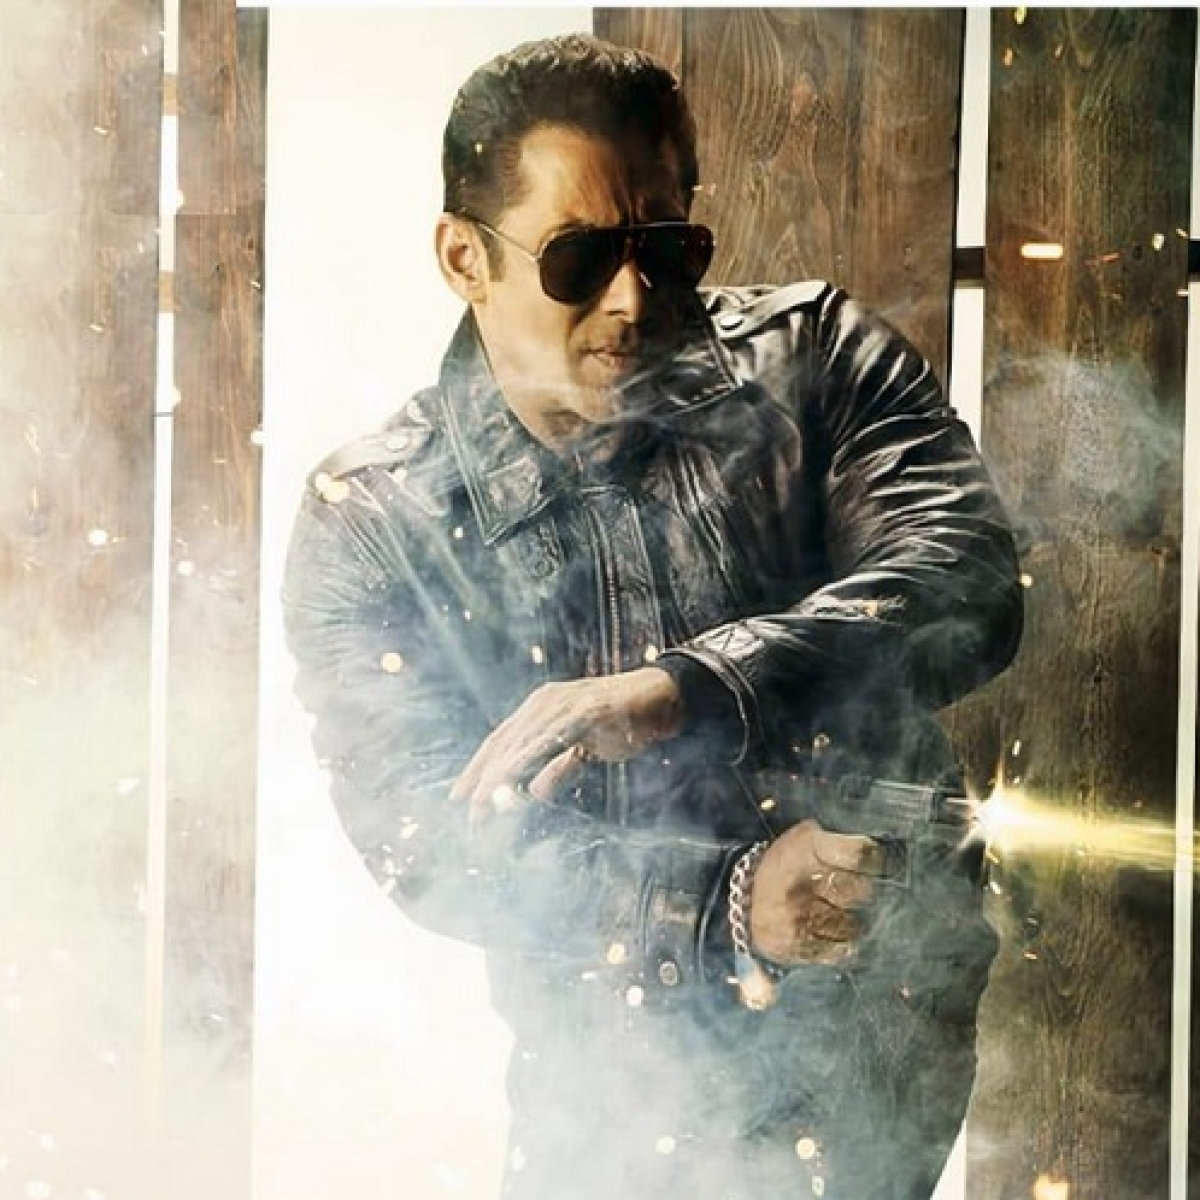 Being Salman Khan: The most-Wanted Bhai! Fans share memories of watching the actor's movies in theatres